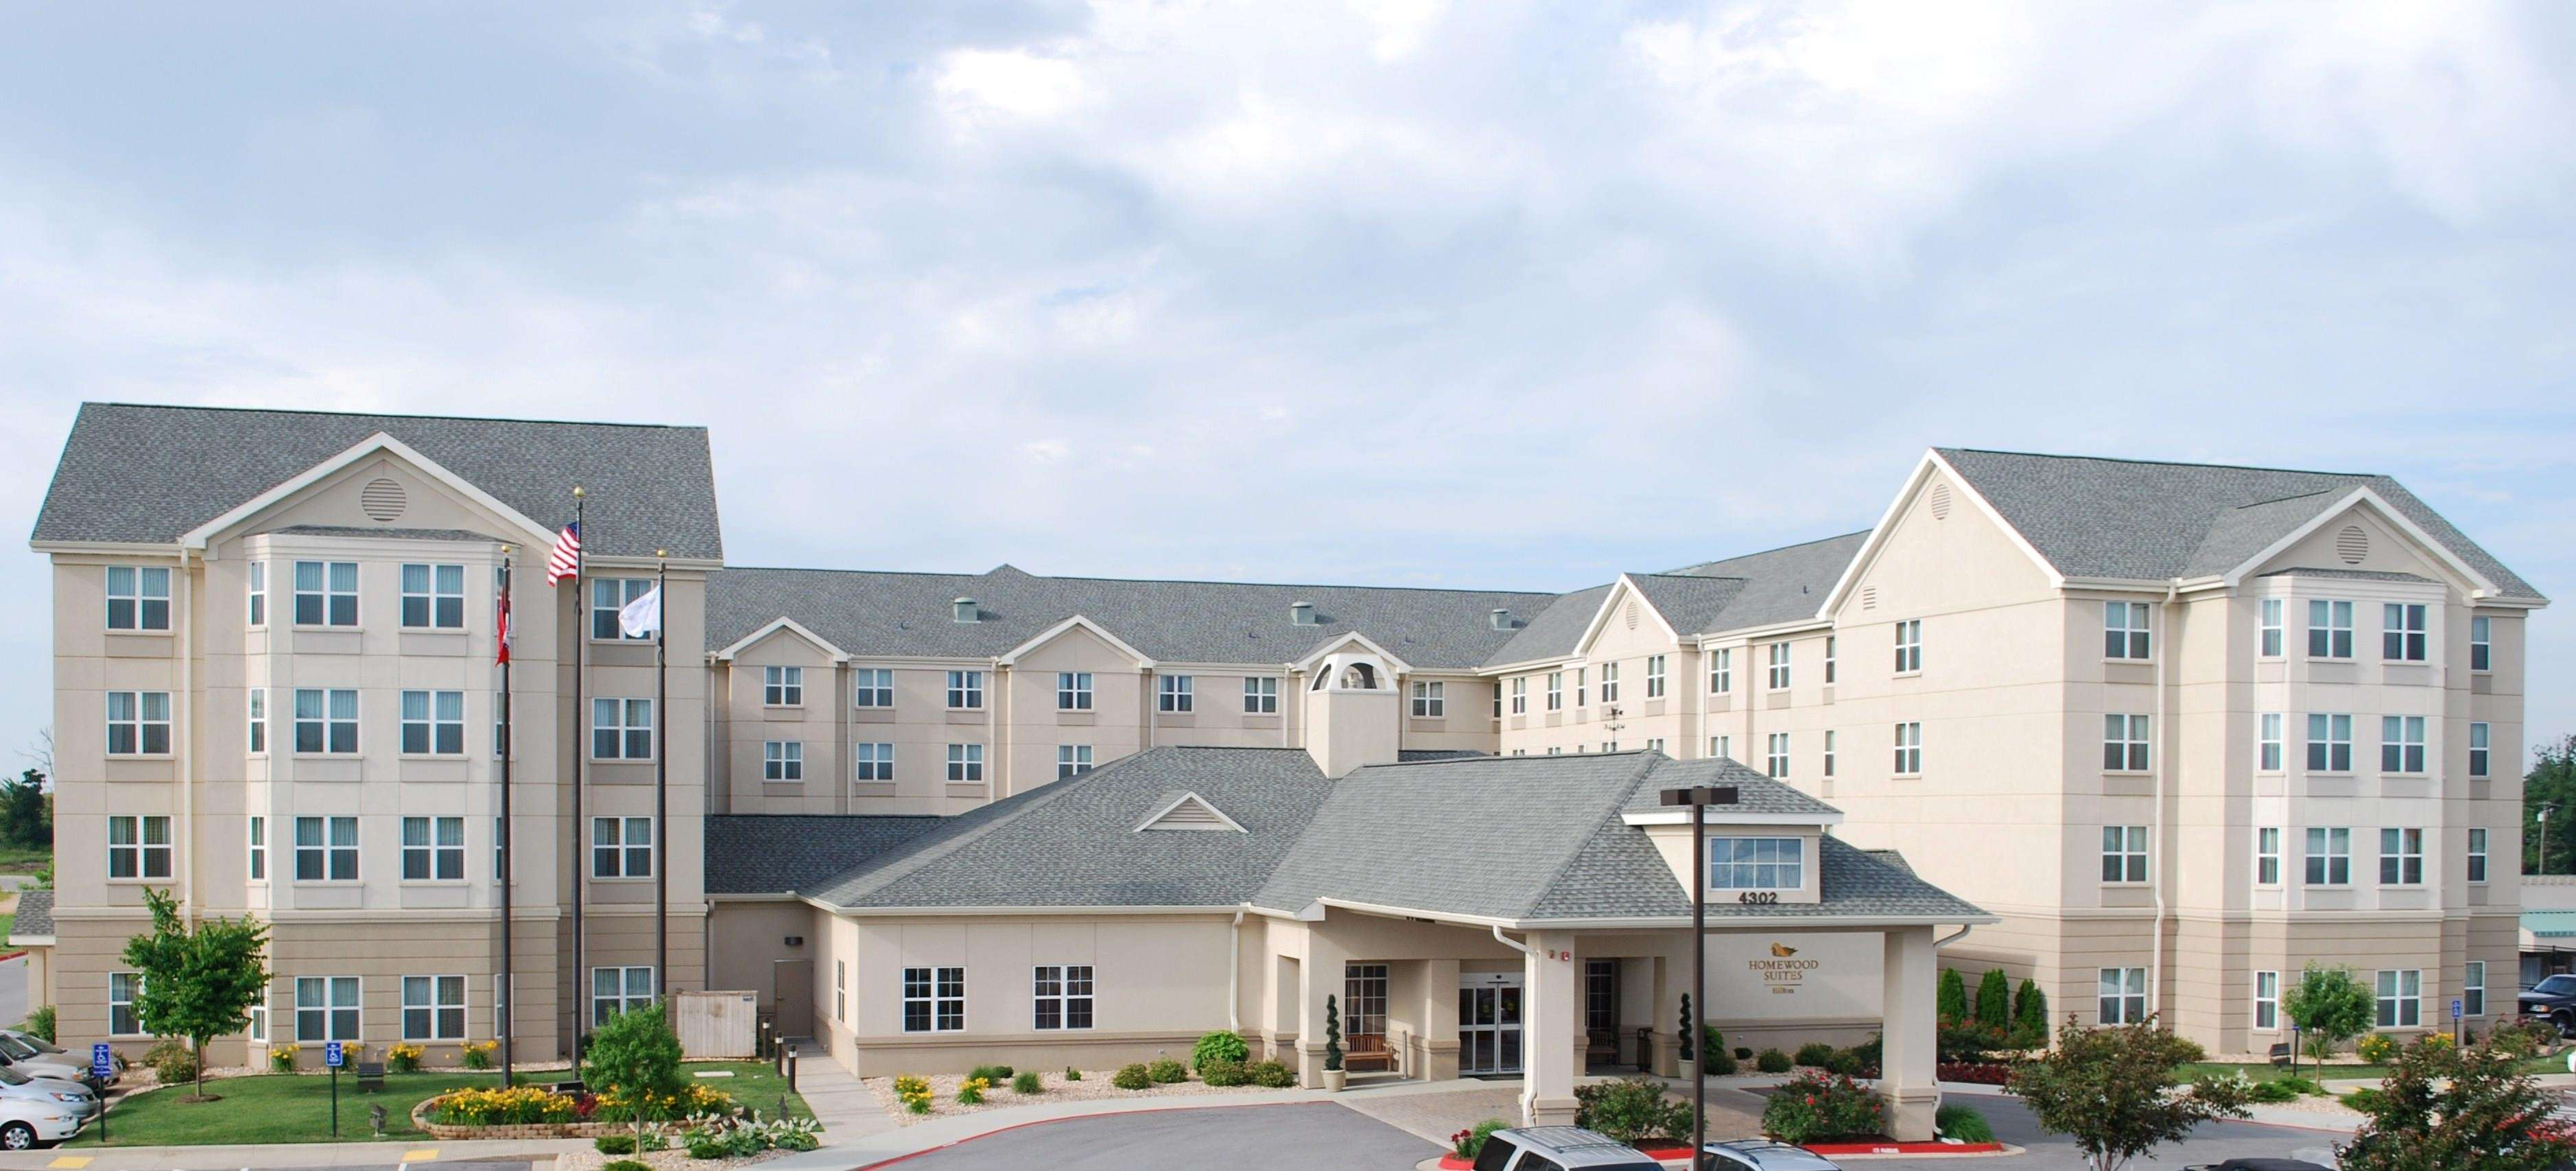 Homewood Suites by Hilton Bentonville-Rogers image 1